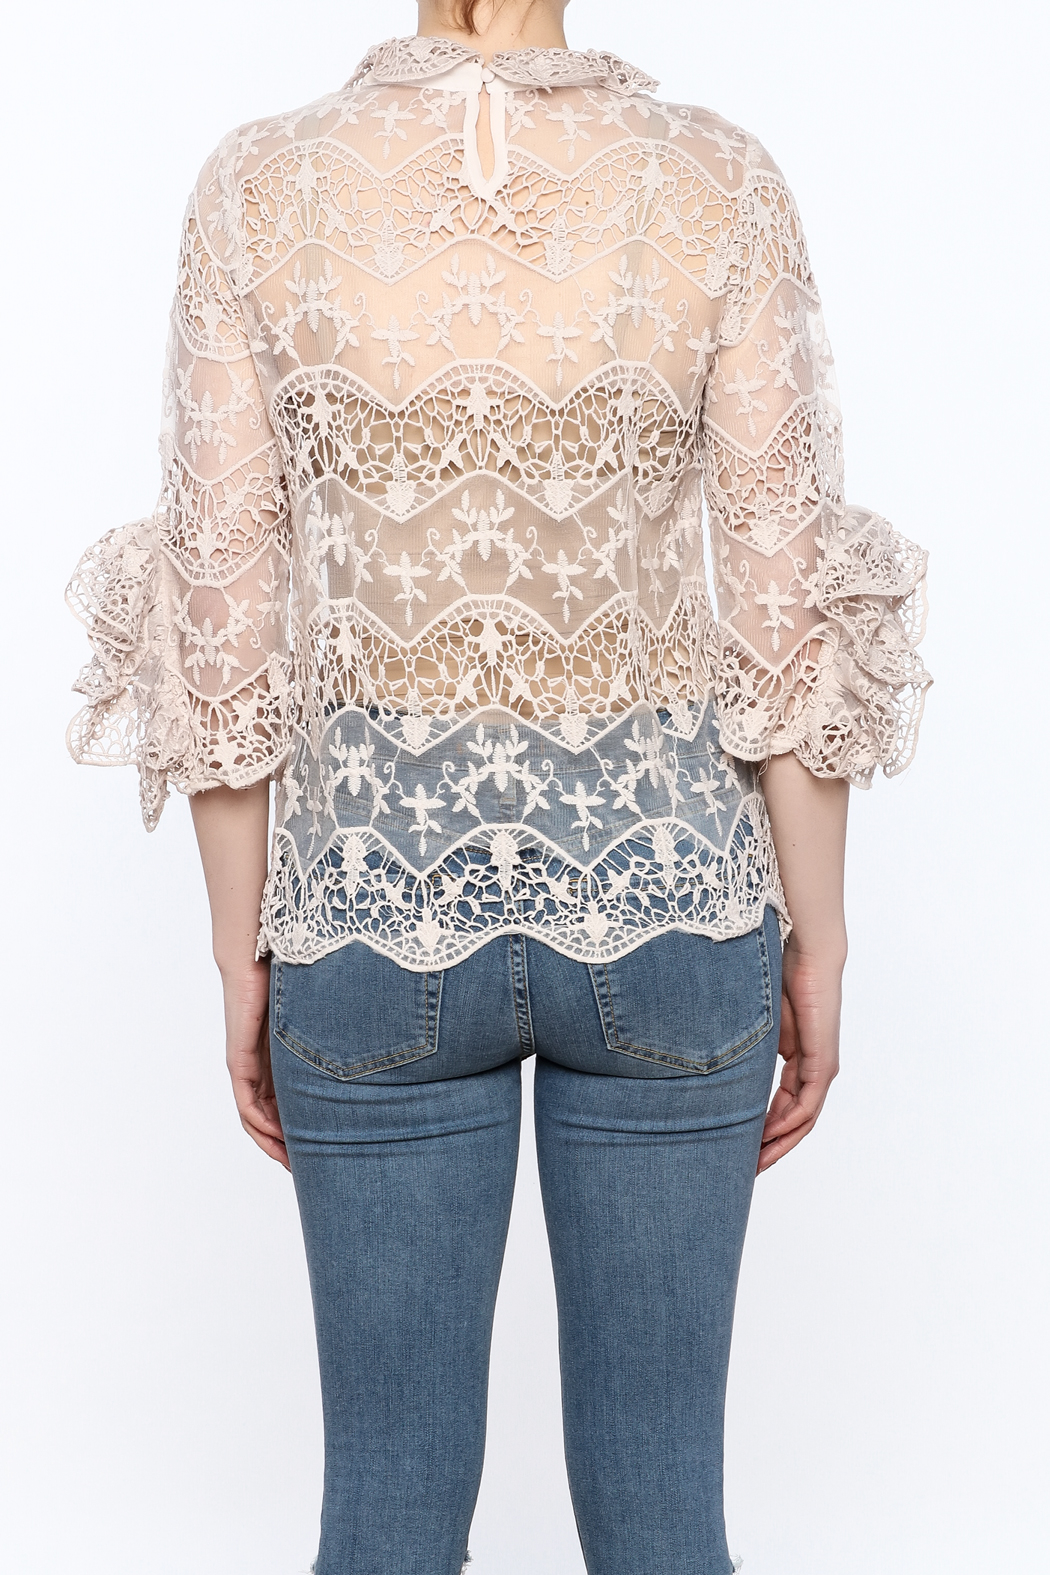 Ina Blush Lace Top - Back Cropped Image